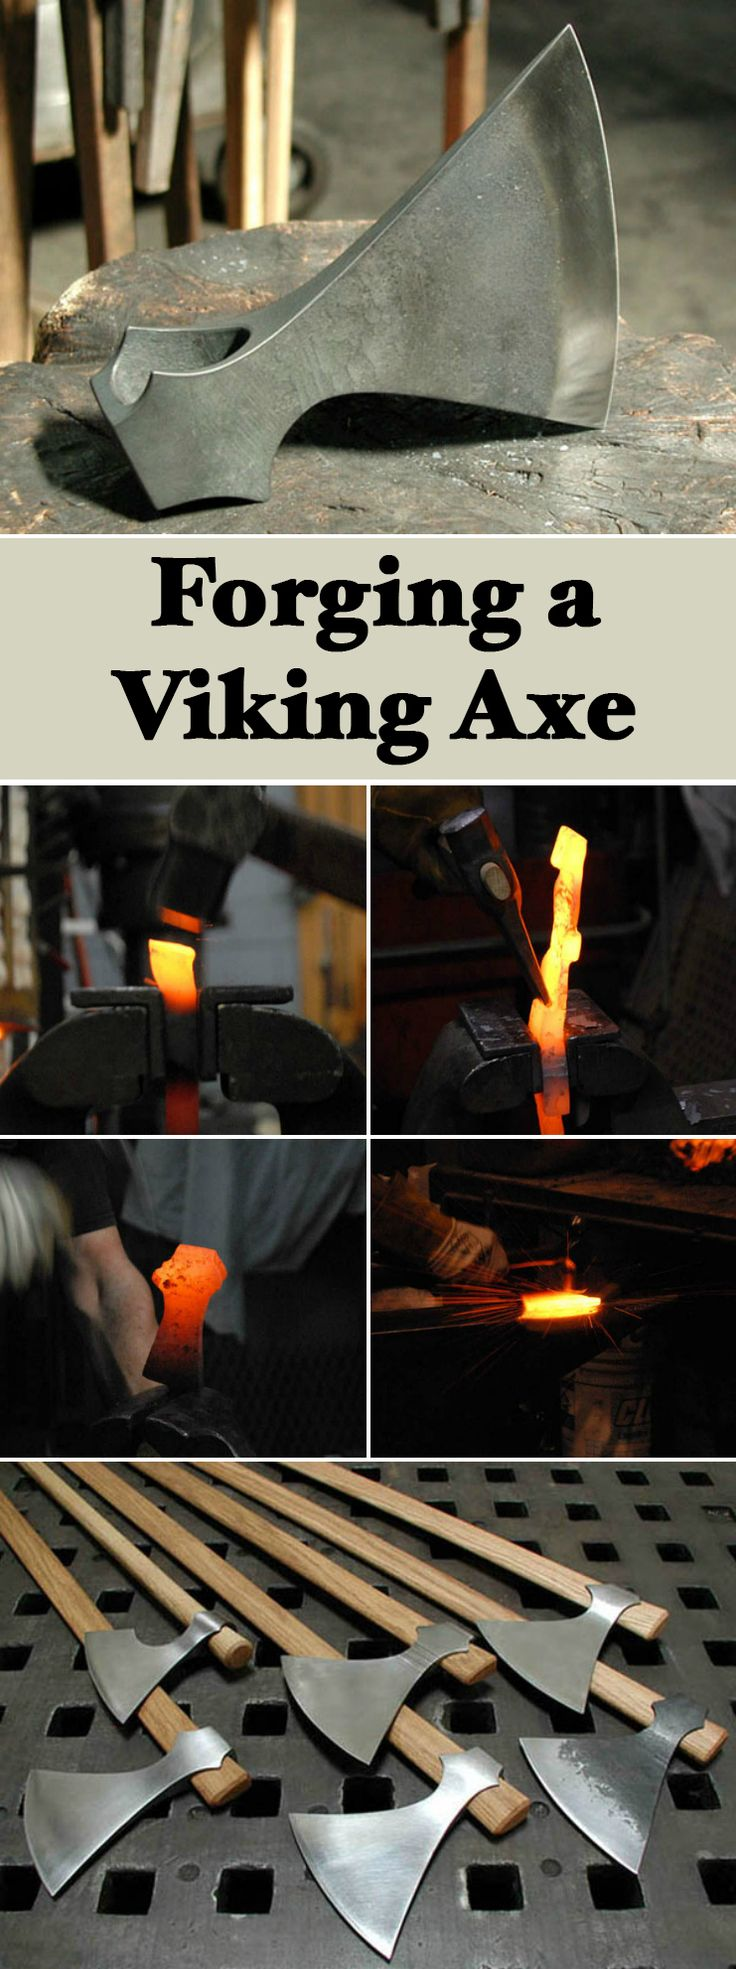 "Forging a Viking Axe | My goal was to find a procedure that could best produce my ""ideal"" wish-list of features in a Viking-style axe eye with fairly simple tooling."